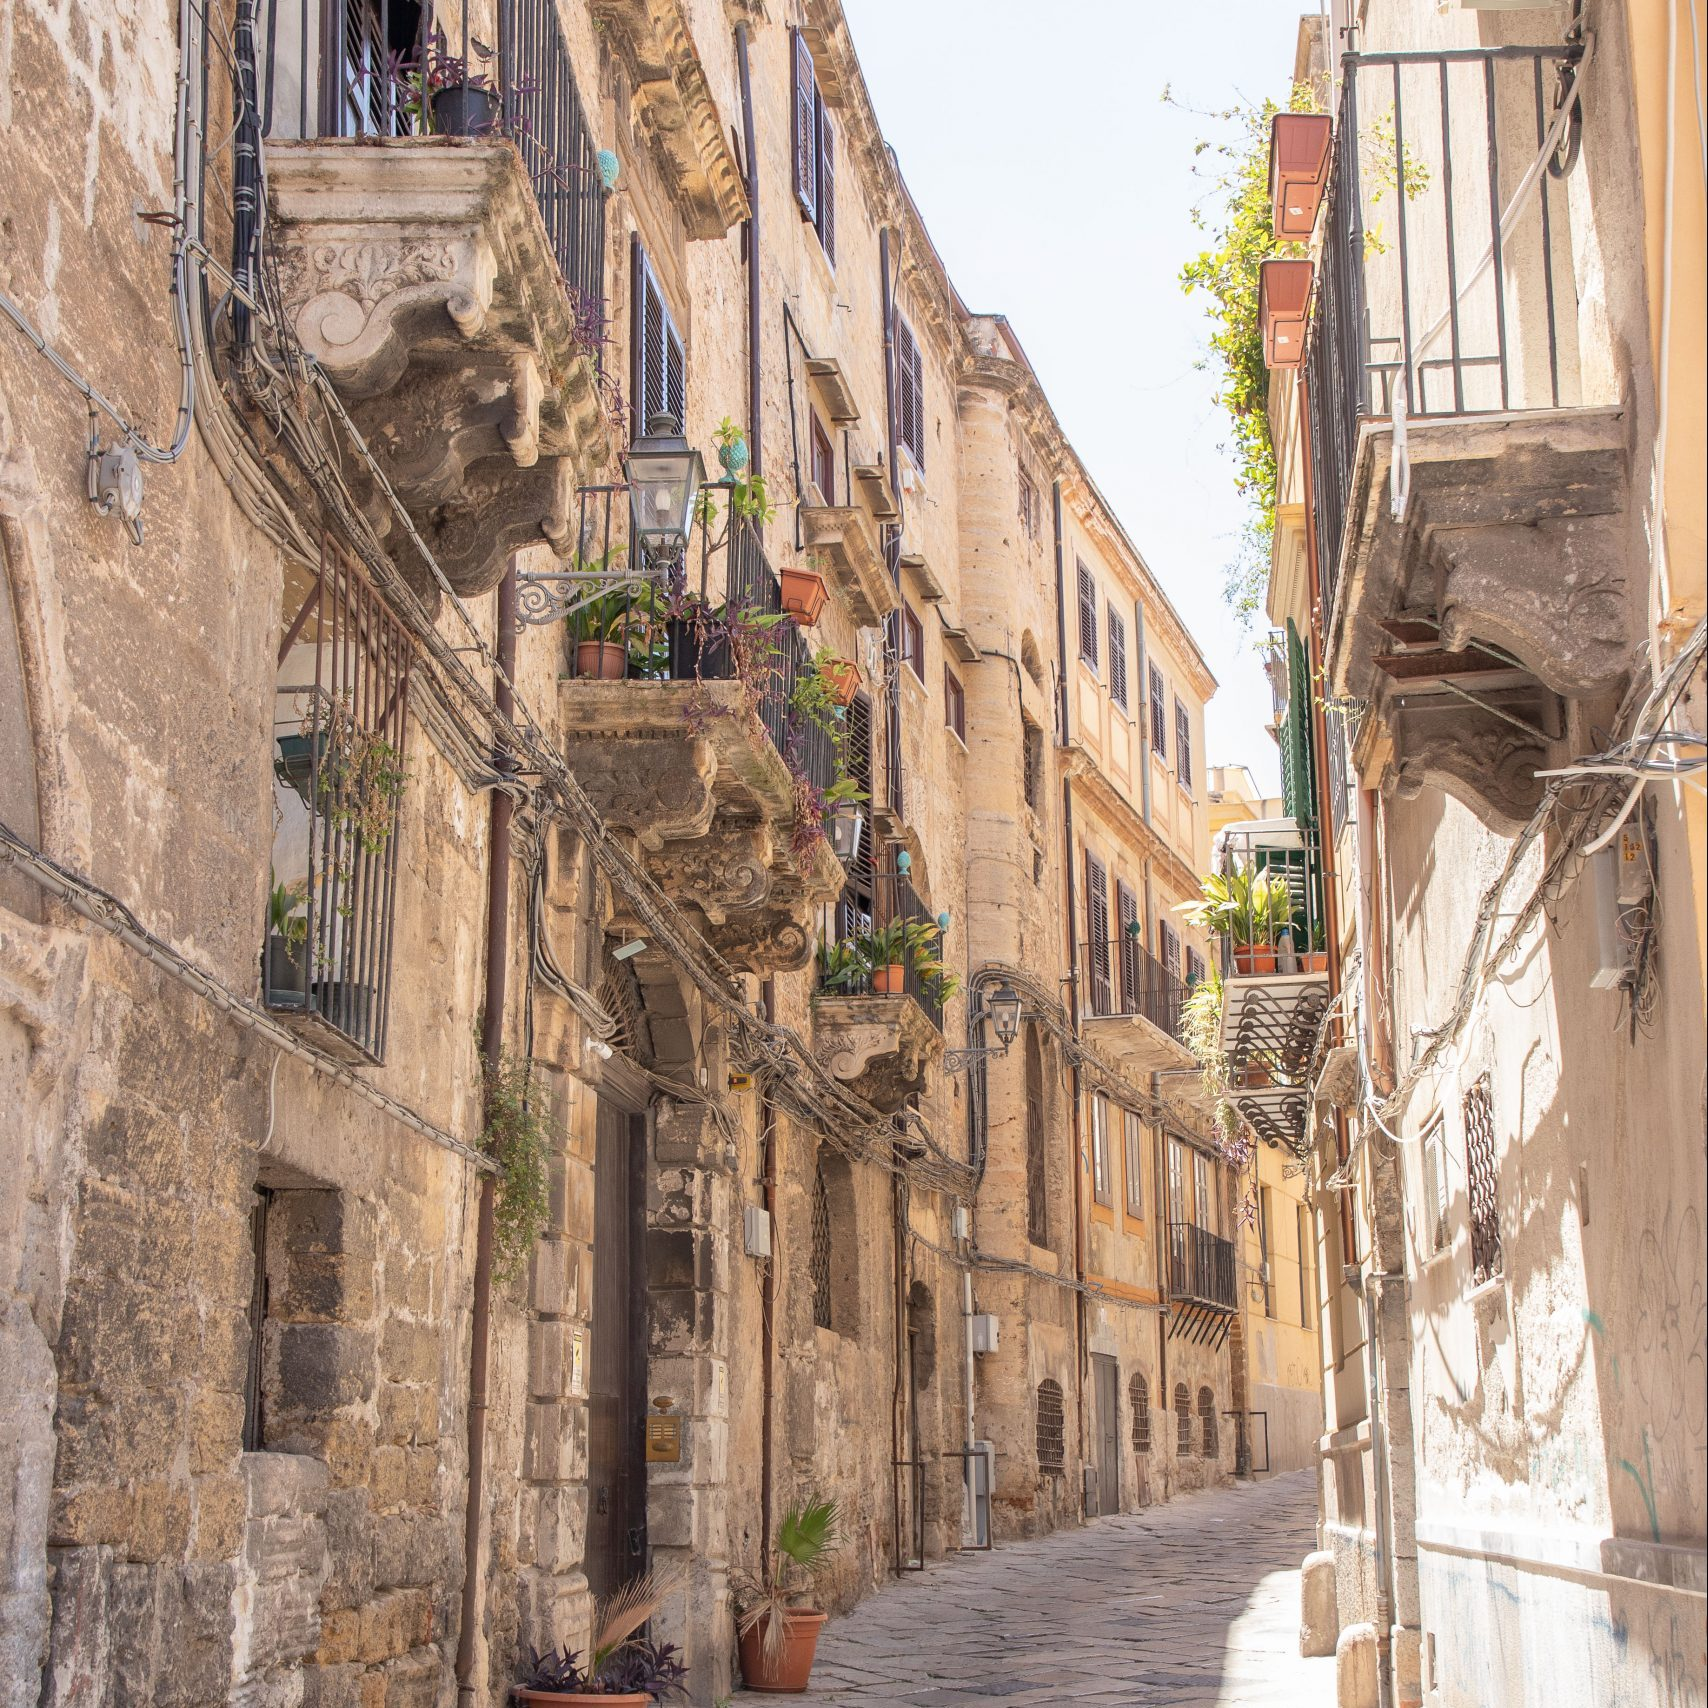 Palermo is packed with history, beauty, architecture and food!